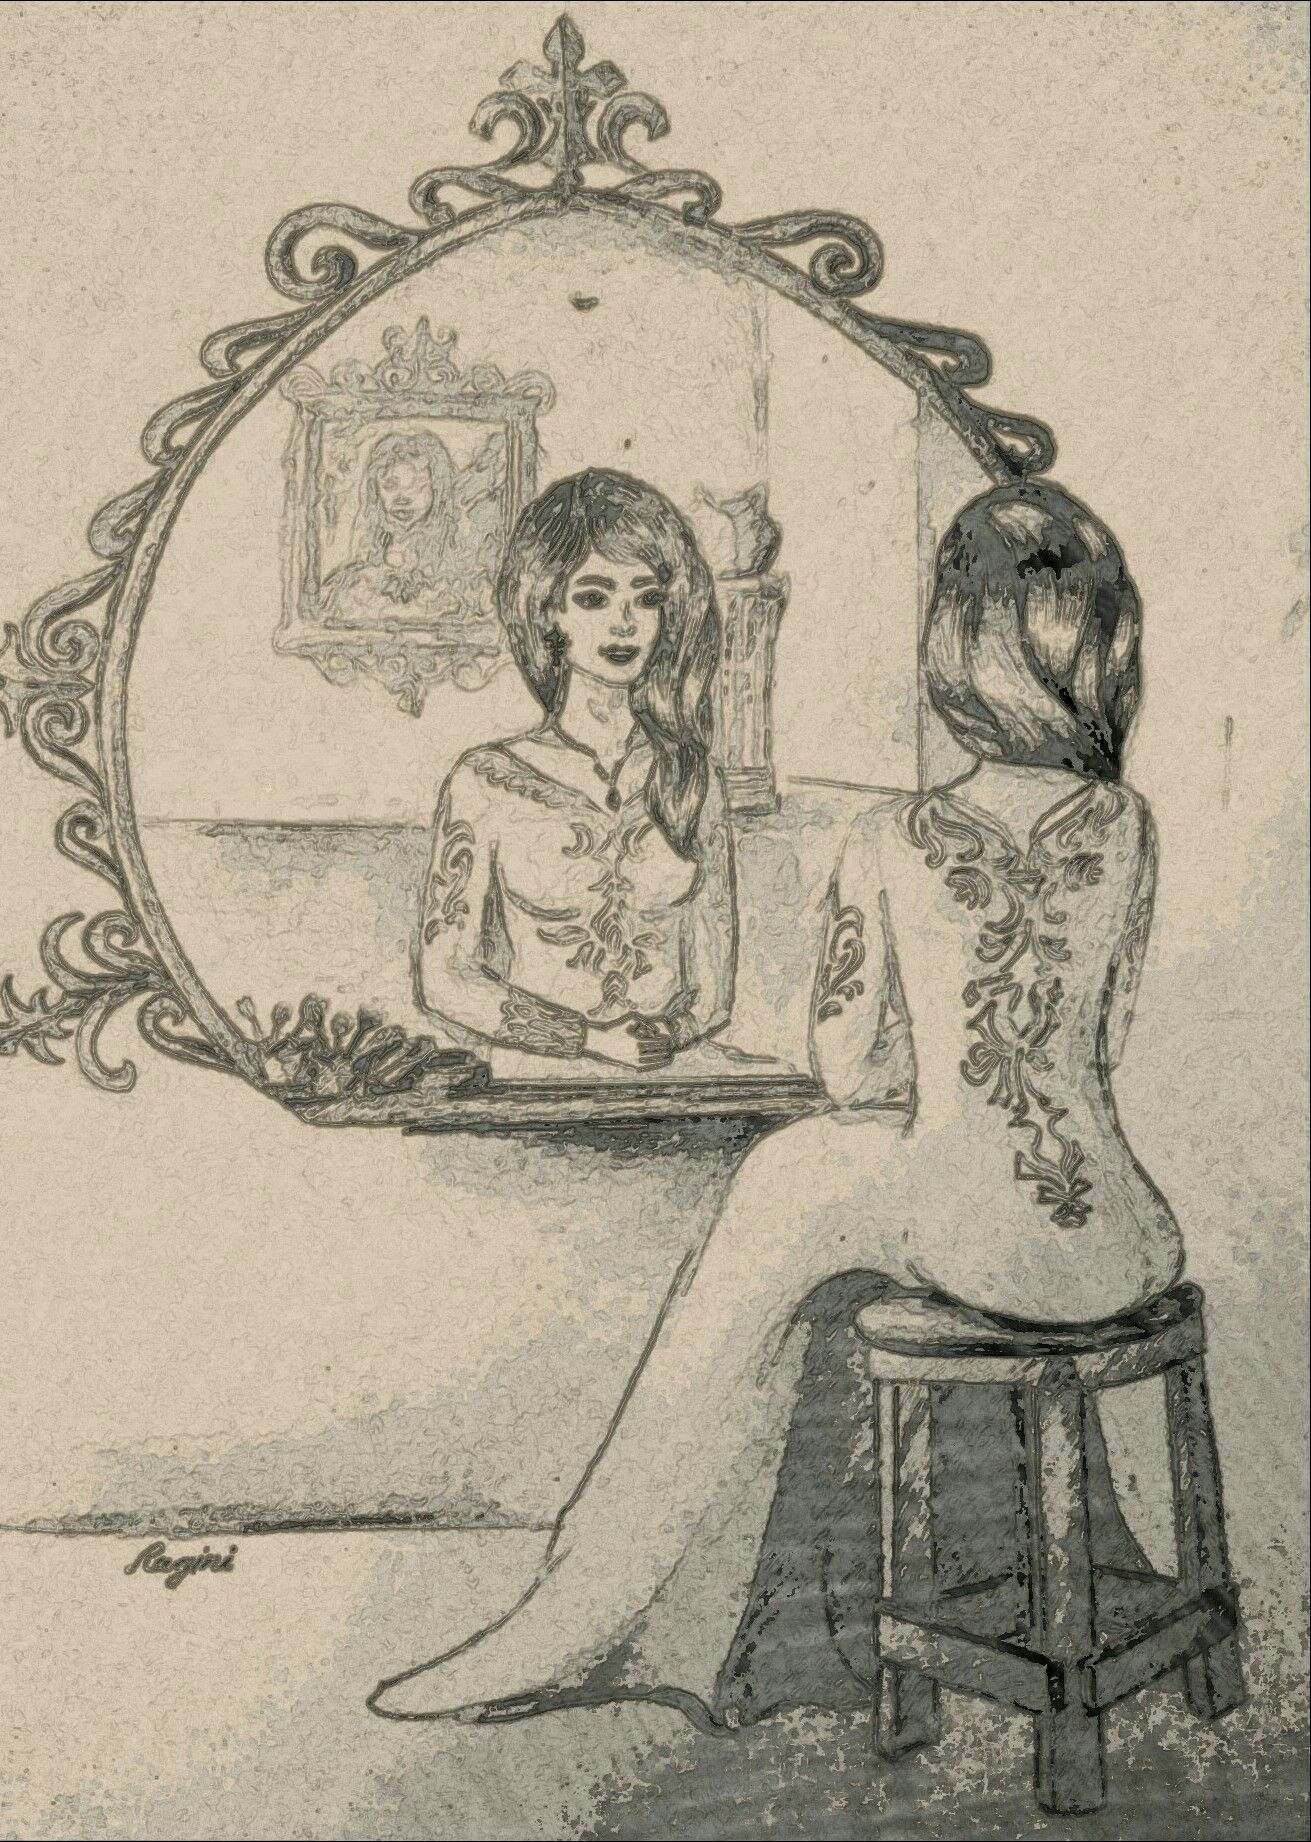 Pencil sketch own imaginationmirror reflection drawing etc